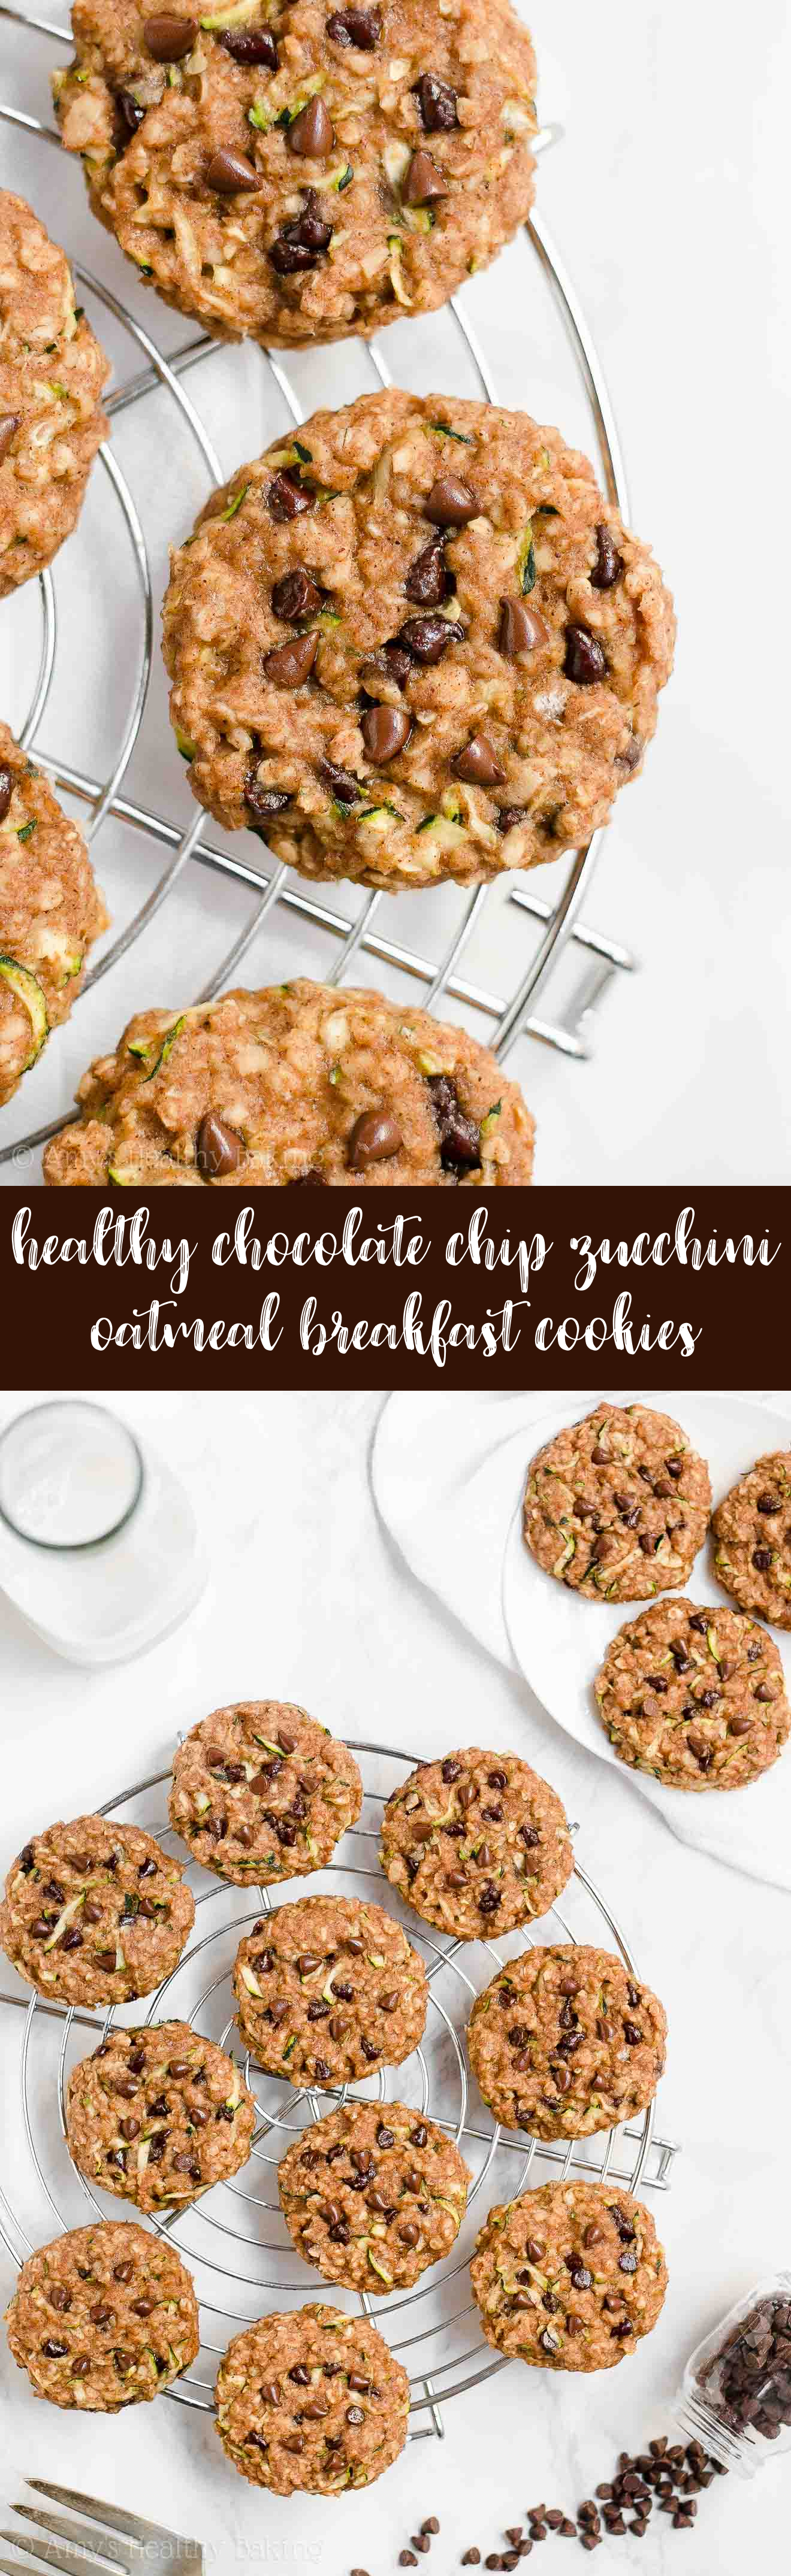 Best Healthy Chocolate Chip Zucchini Oatmeal Breakfast Cookies